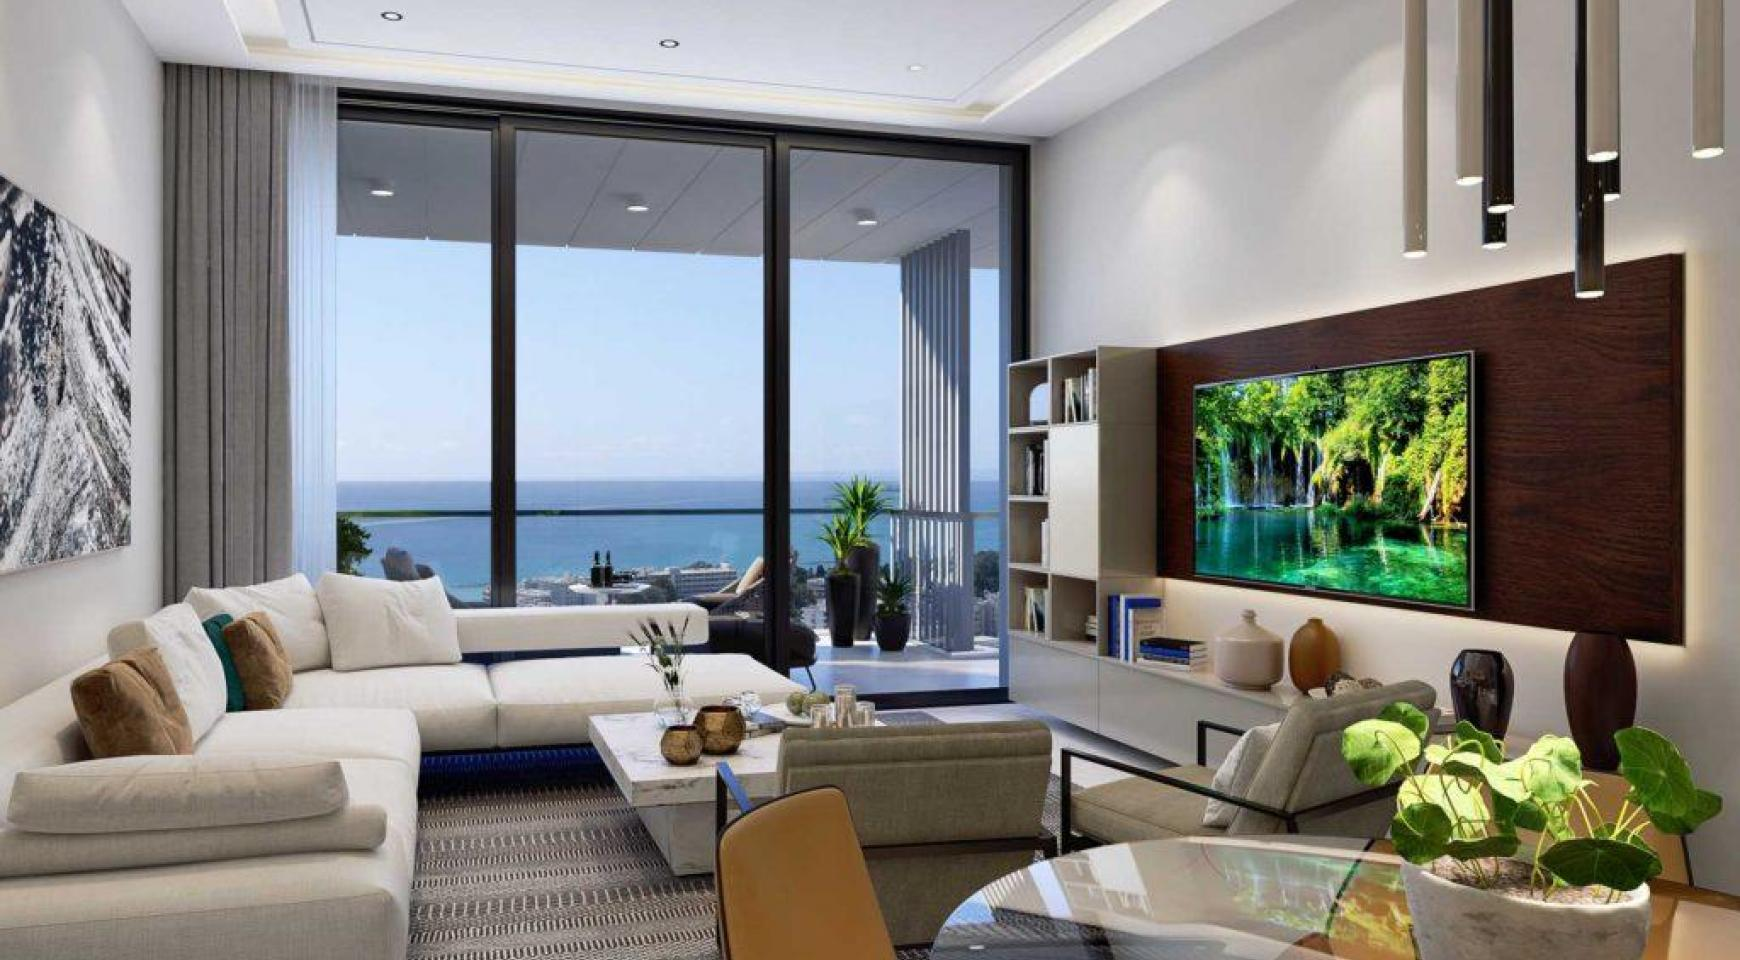 Spacious One Bedroom Apartment with Sea Views in a Luxury Complex - 2